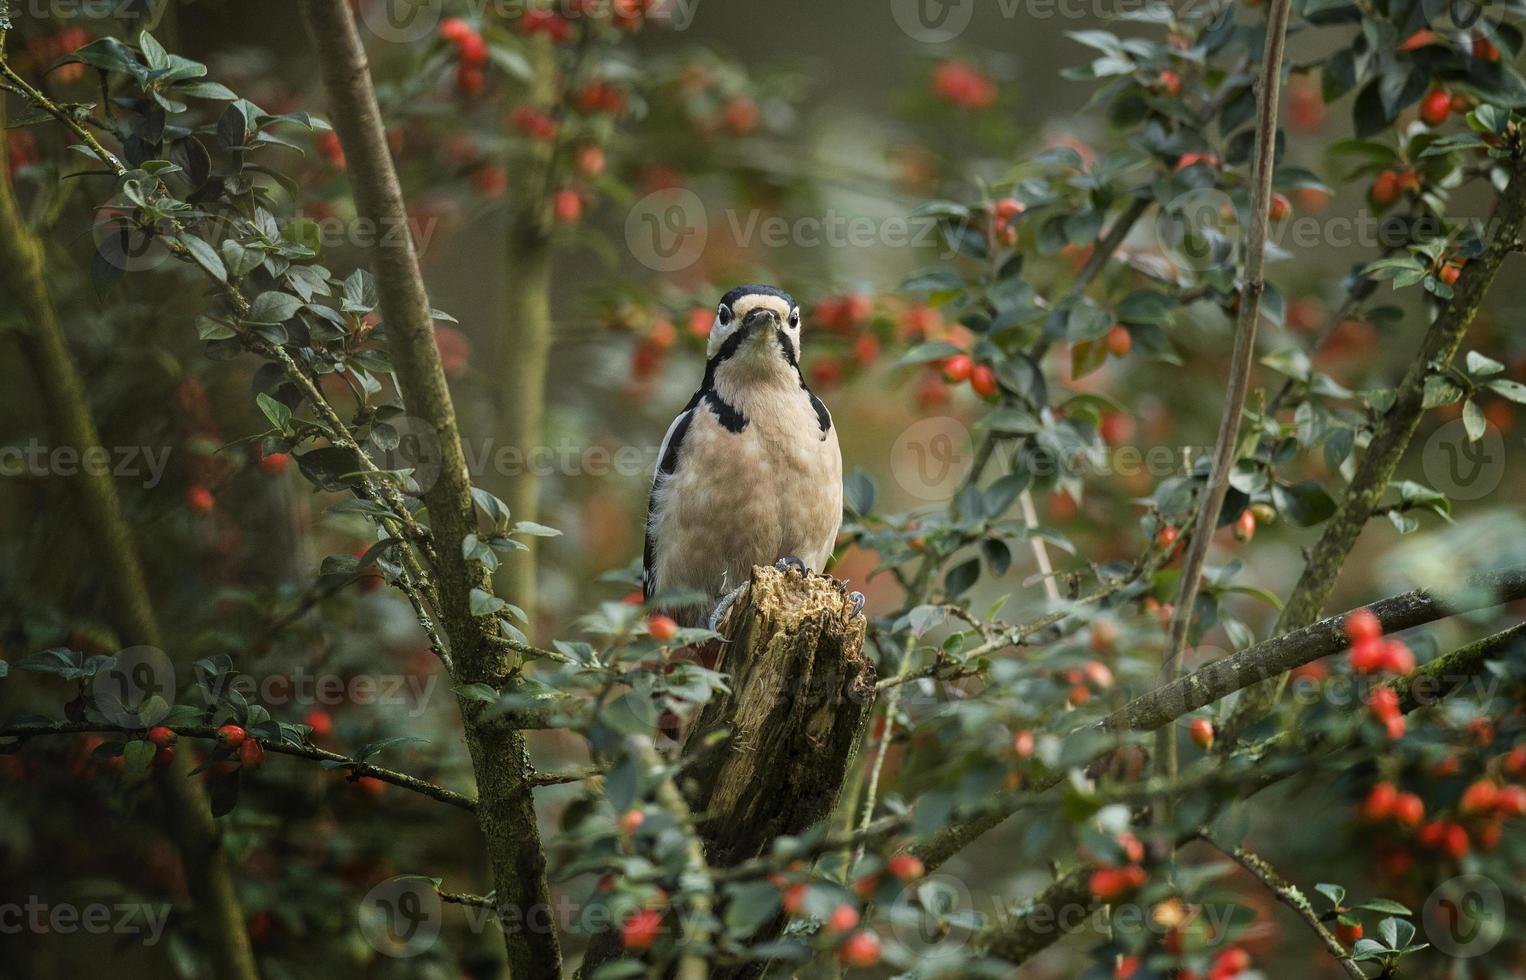 Great spotted woodpecker, in a berry bush photo